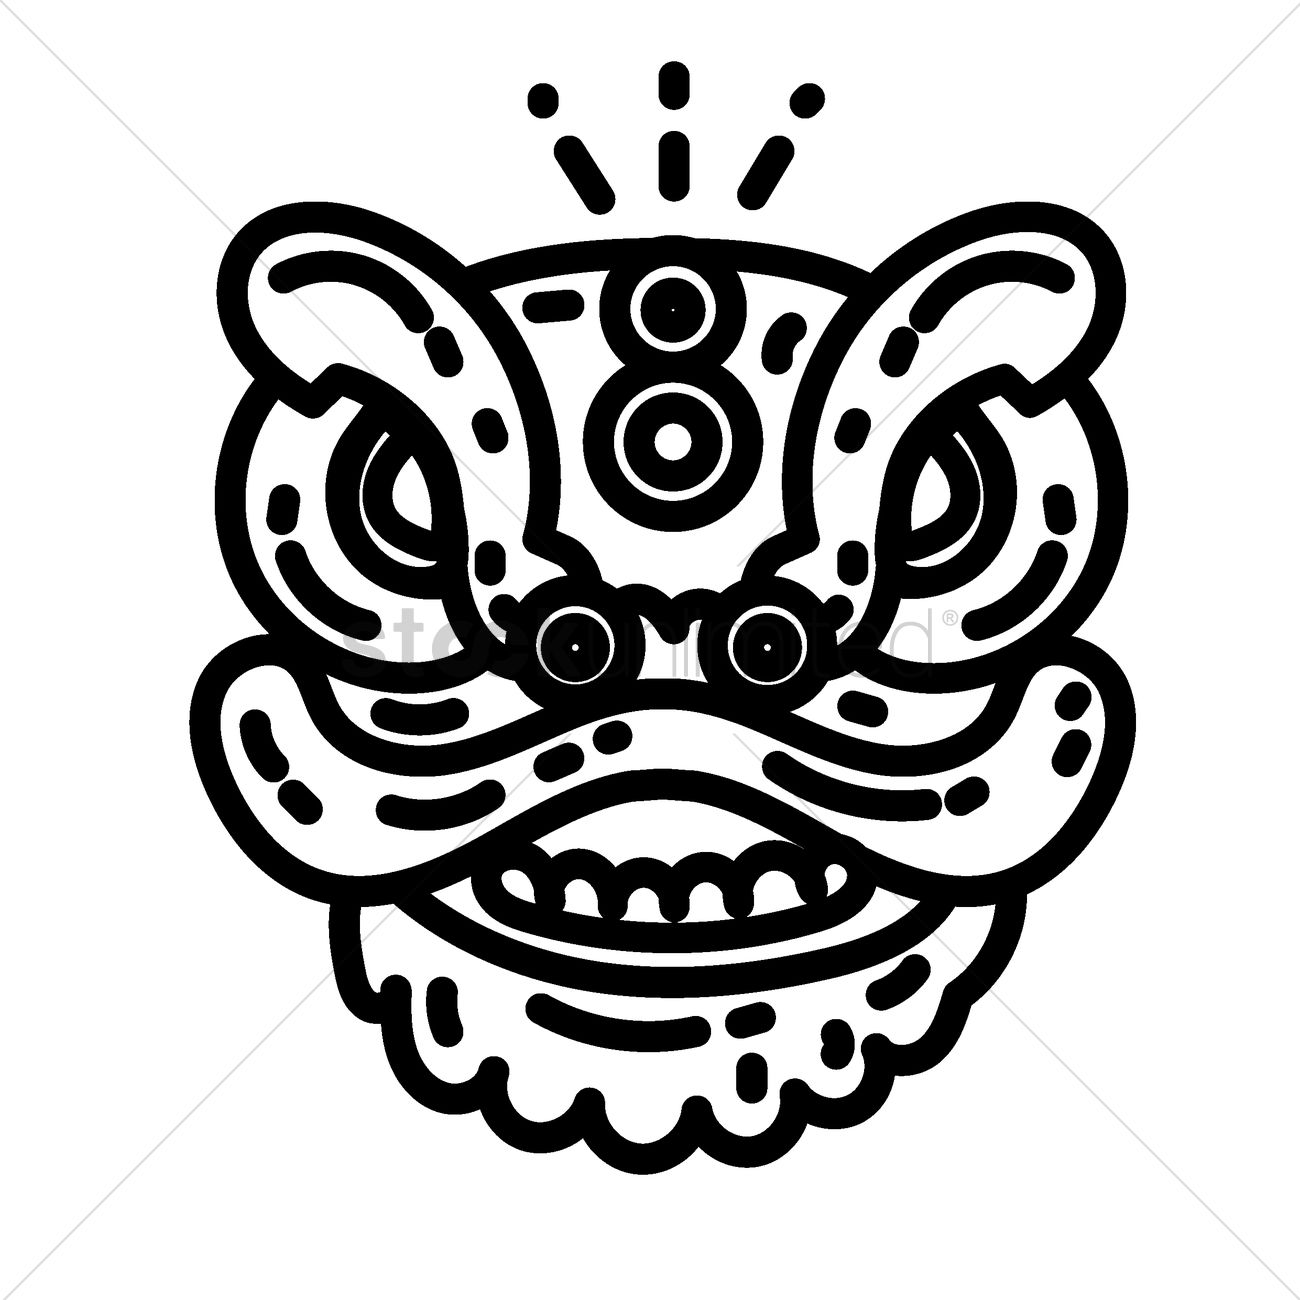 Chinese lion dance head Vector Image.